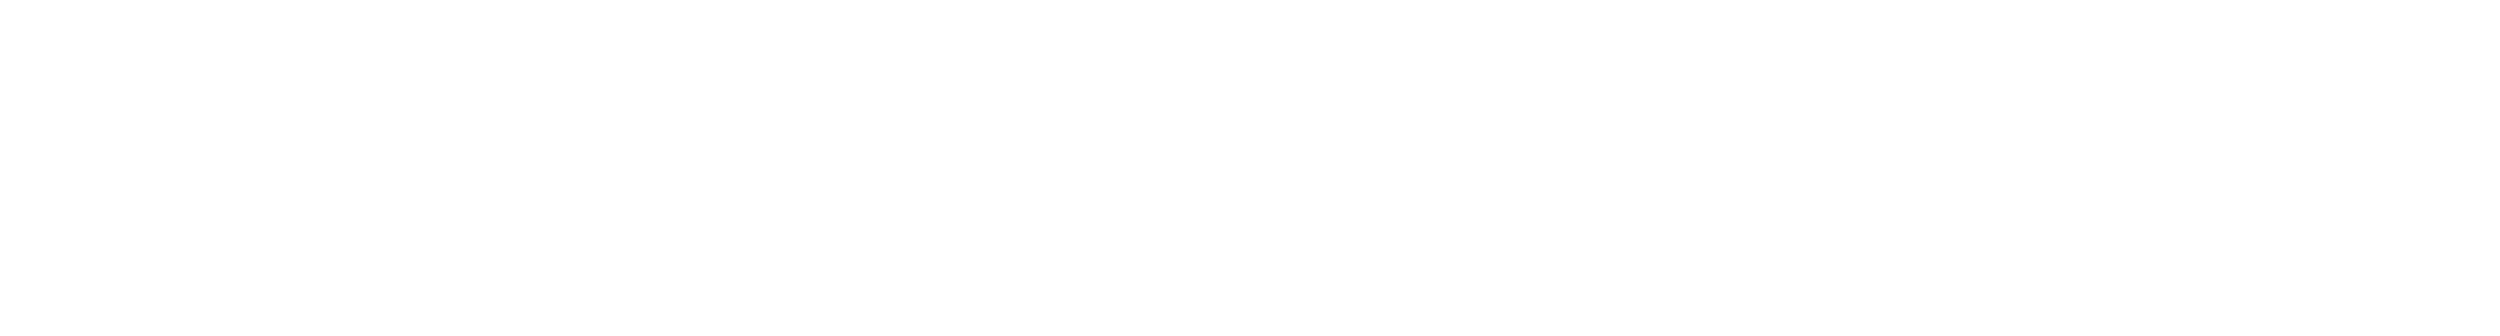 Sine digital squiggle